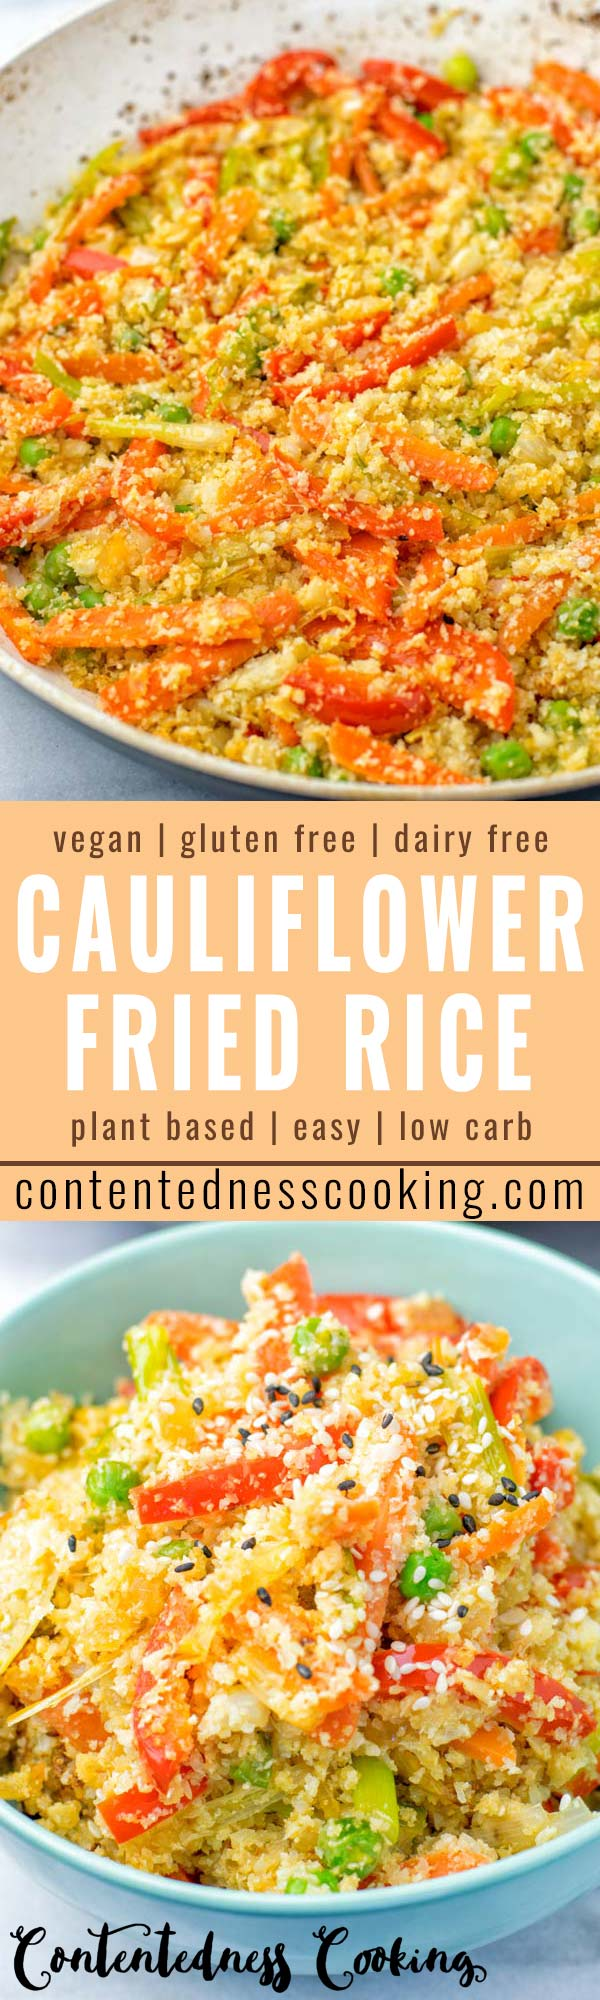 This Cauliflower Fried Rice is a super easy to make for your one pan meals and ready in 15 minutes. Naturally vegan, gluten free and low carb. An amazing dinner, lunch, meal prep, work lunch idea that the whole family will love. Healthy and so satisfying, yum! #vegan #dairyfree #glutenfree #vegetarian #cauliflowerrice #dinner #lunch #onepanmeals #lowcarbmeals #budgetmeals #familydinnershealthy #contentednesscooking #mealprep #worklunchideas